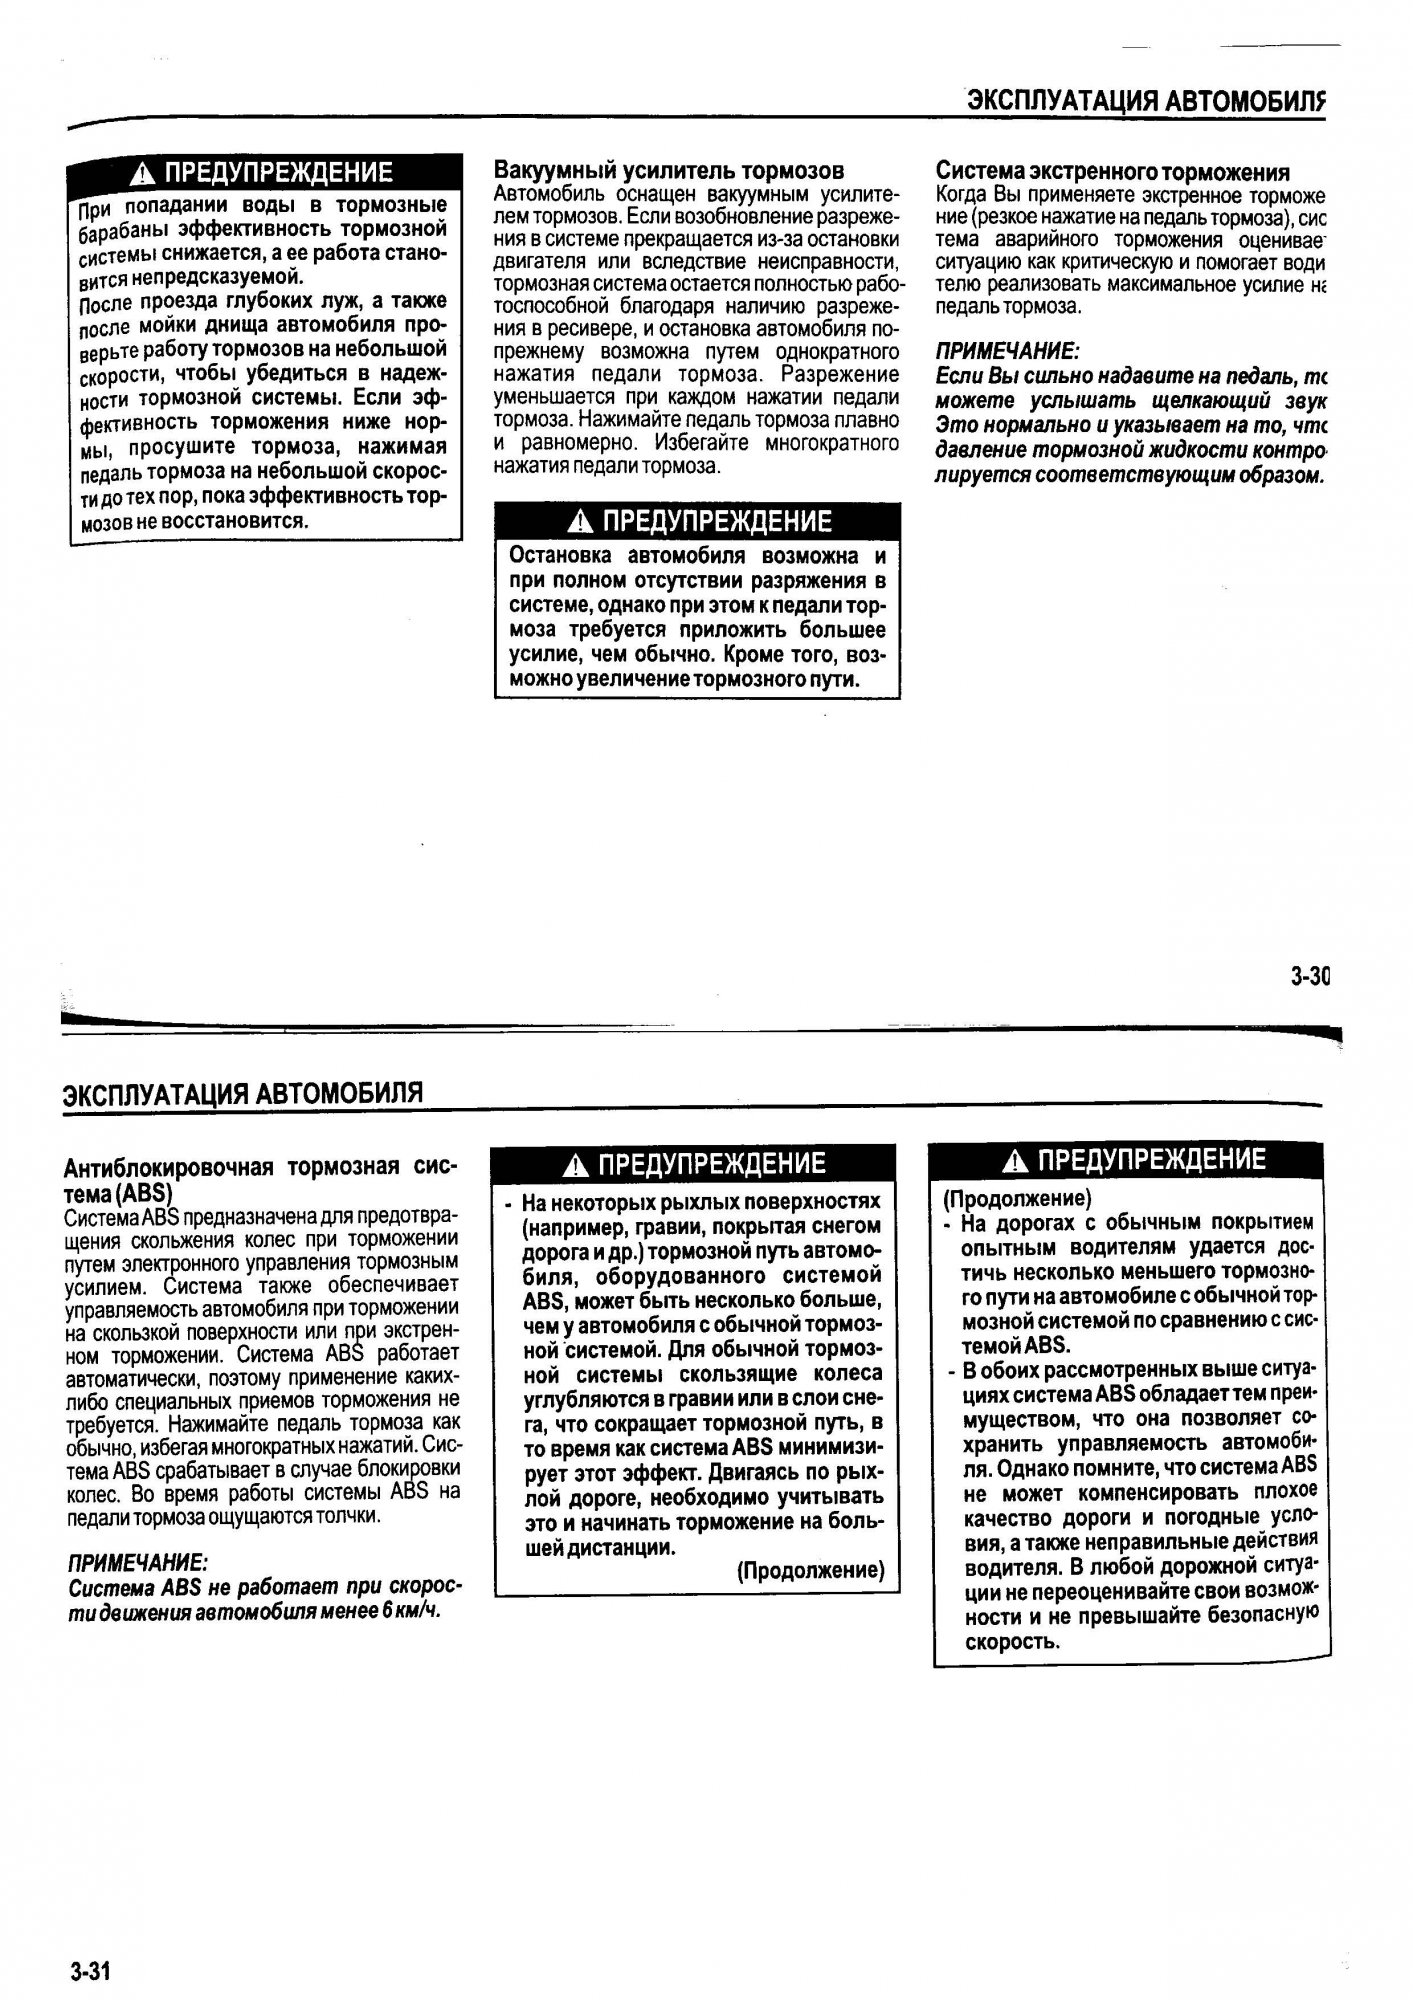 page30_31.jpg